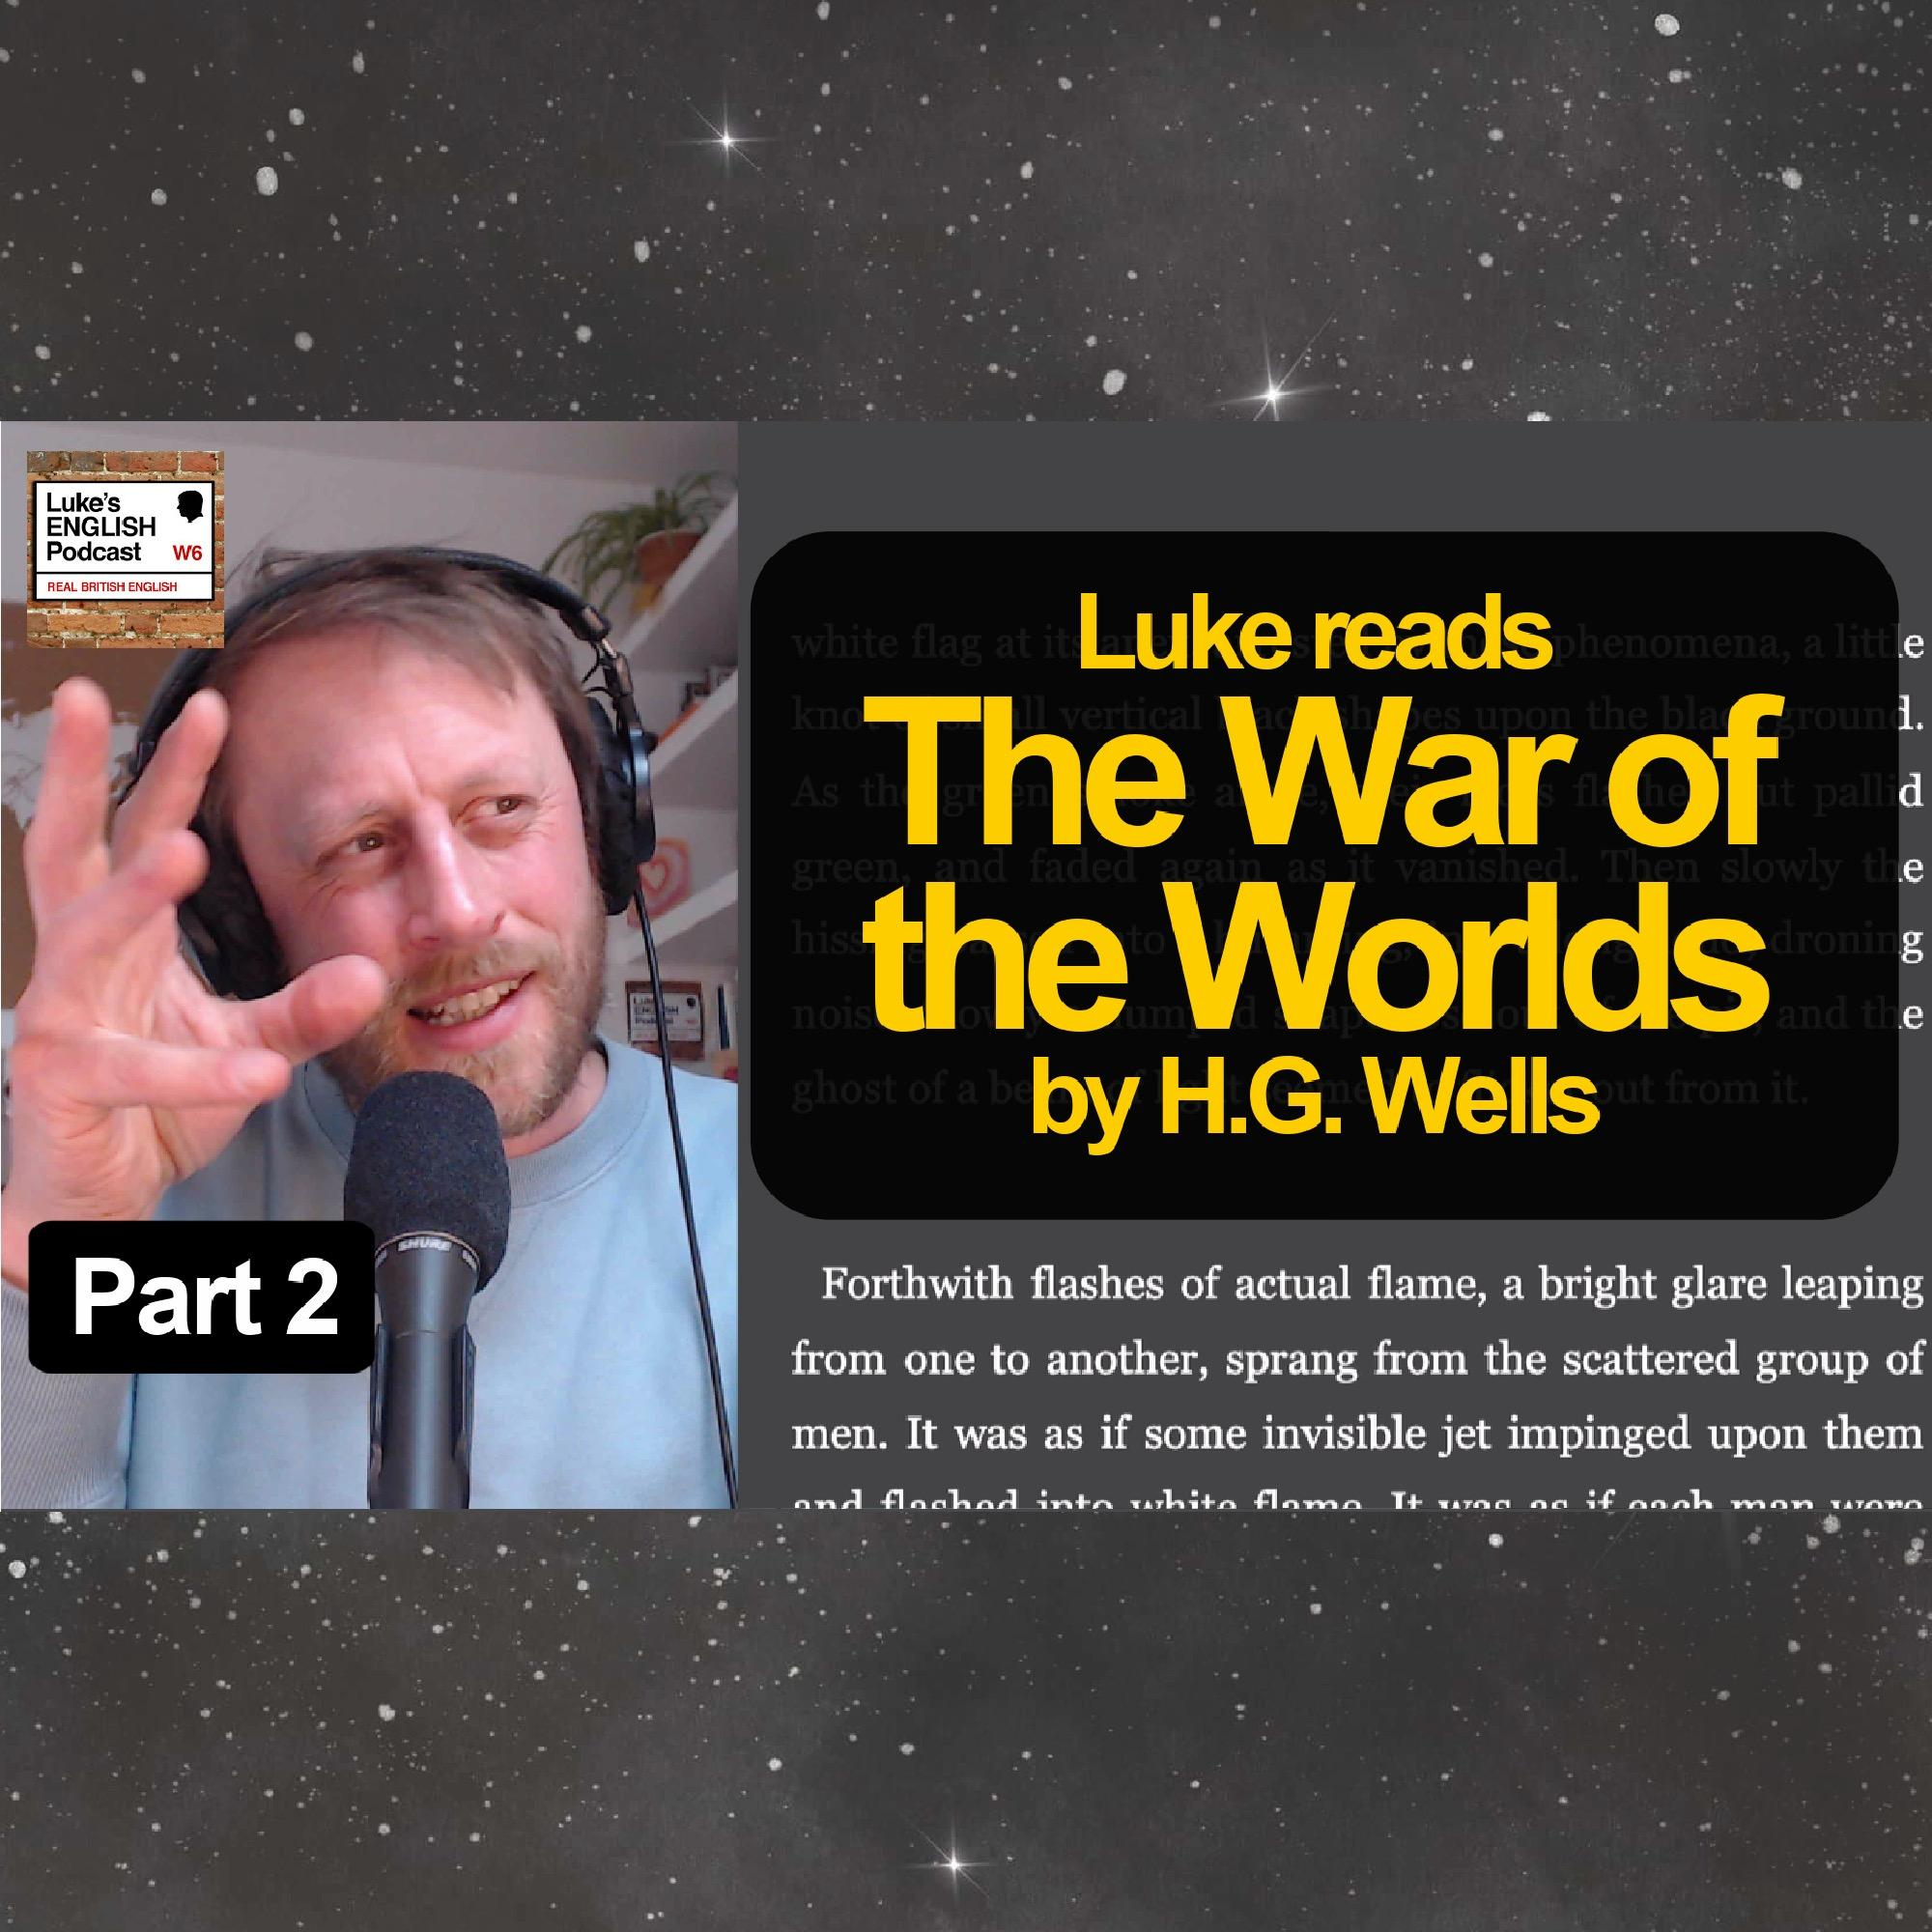 735. The War of the Worlds by H.G. Wells [Part 2] Learn English with Stories